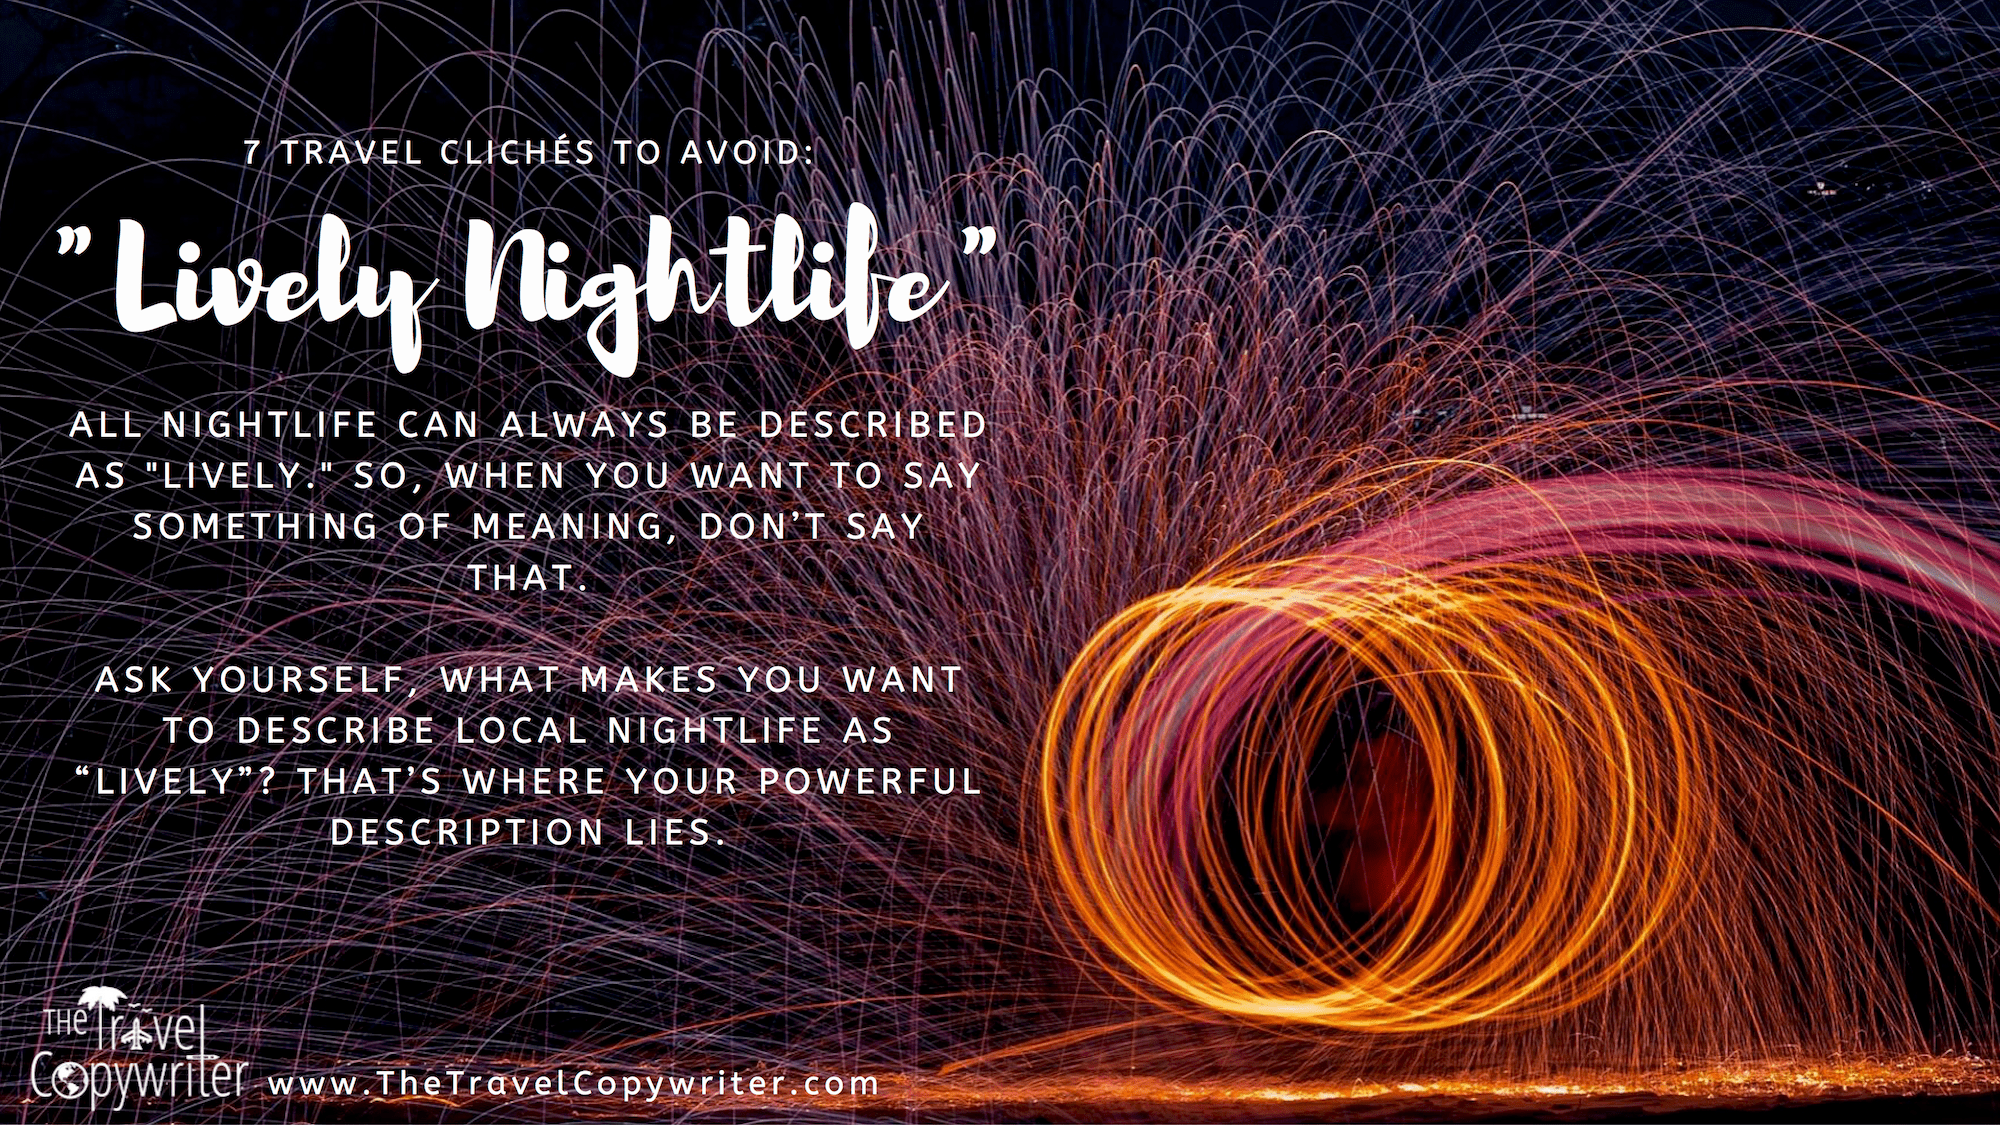 Travel Copywriting Cliches-Lively Nightlife